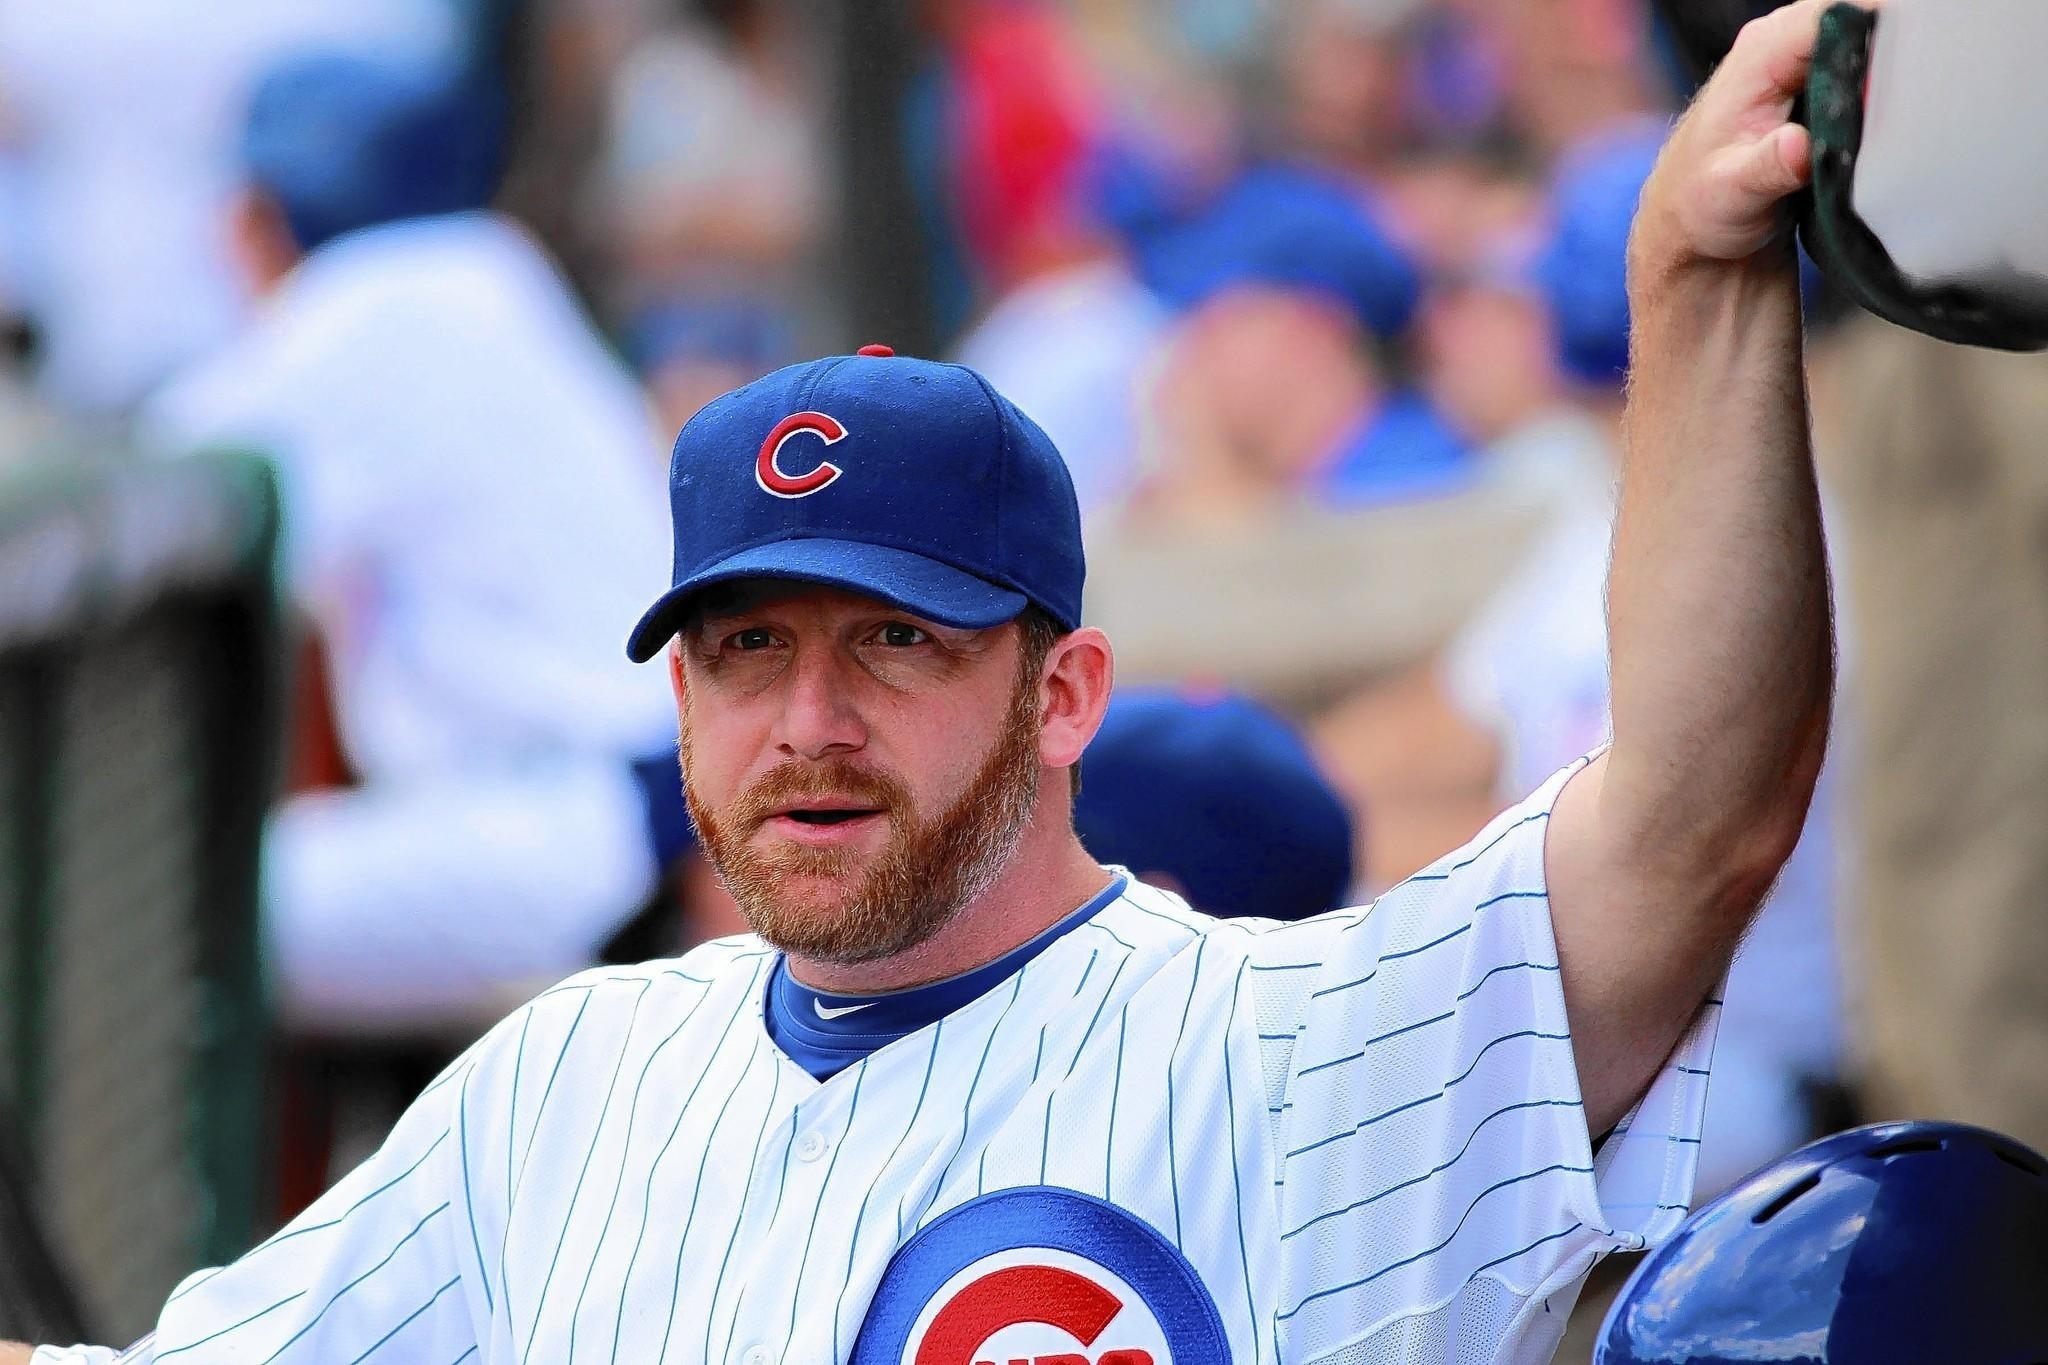 Former Chicago Cubs pitcher Ryan Dempster has bought another North Side property, paying $1.95 million for a newly built, 5,650-square-foot house in west Lakeview.